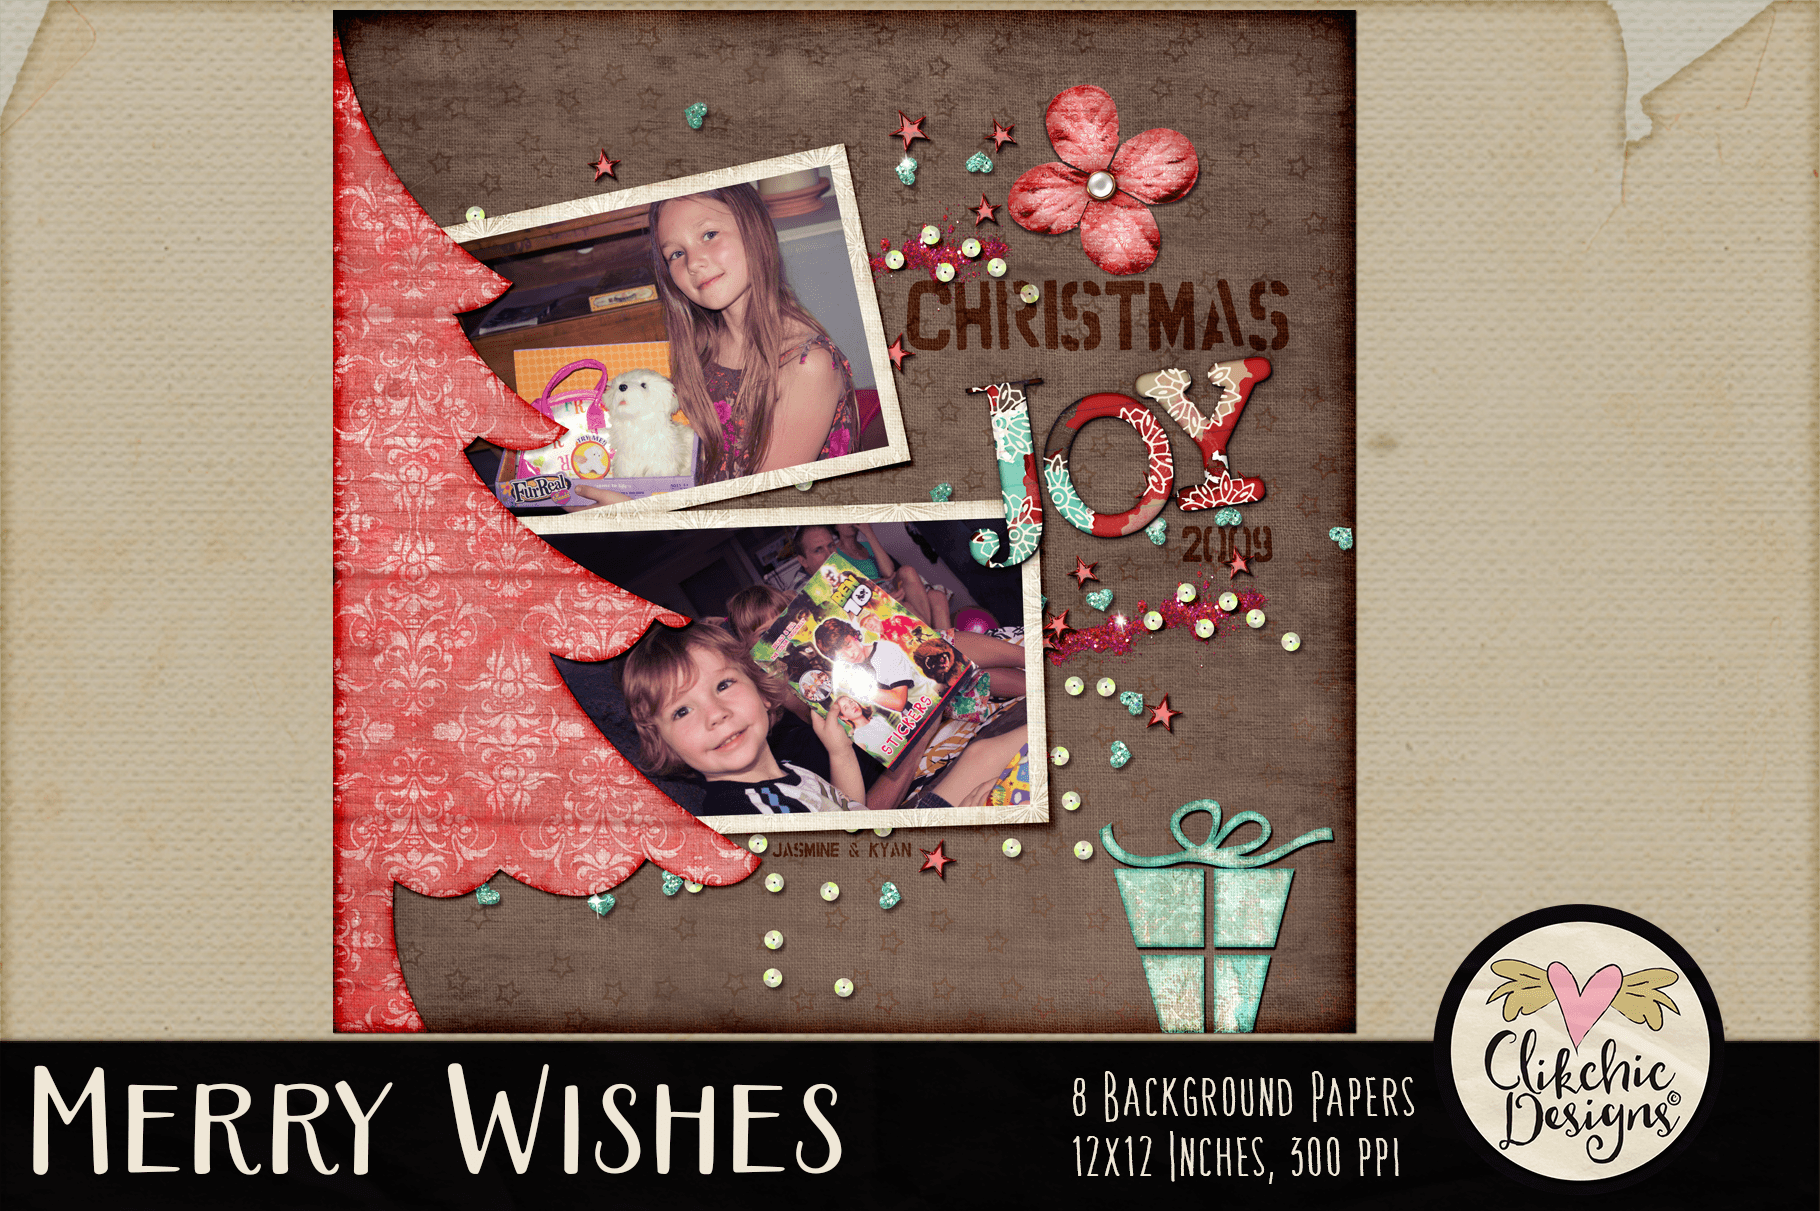 Christmas Backgrounds - Merry Wishes Digital Papers Textures example image 8